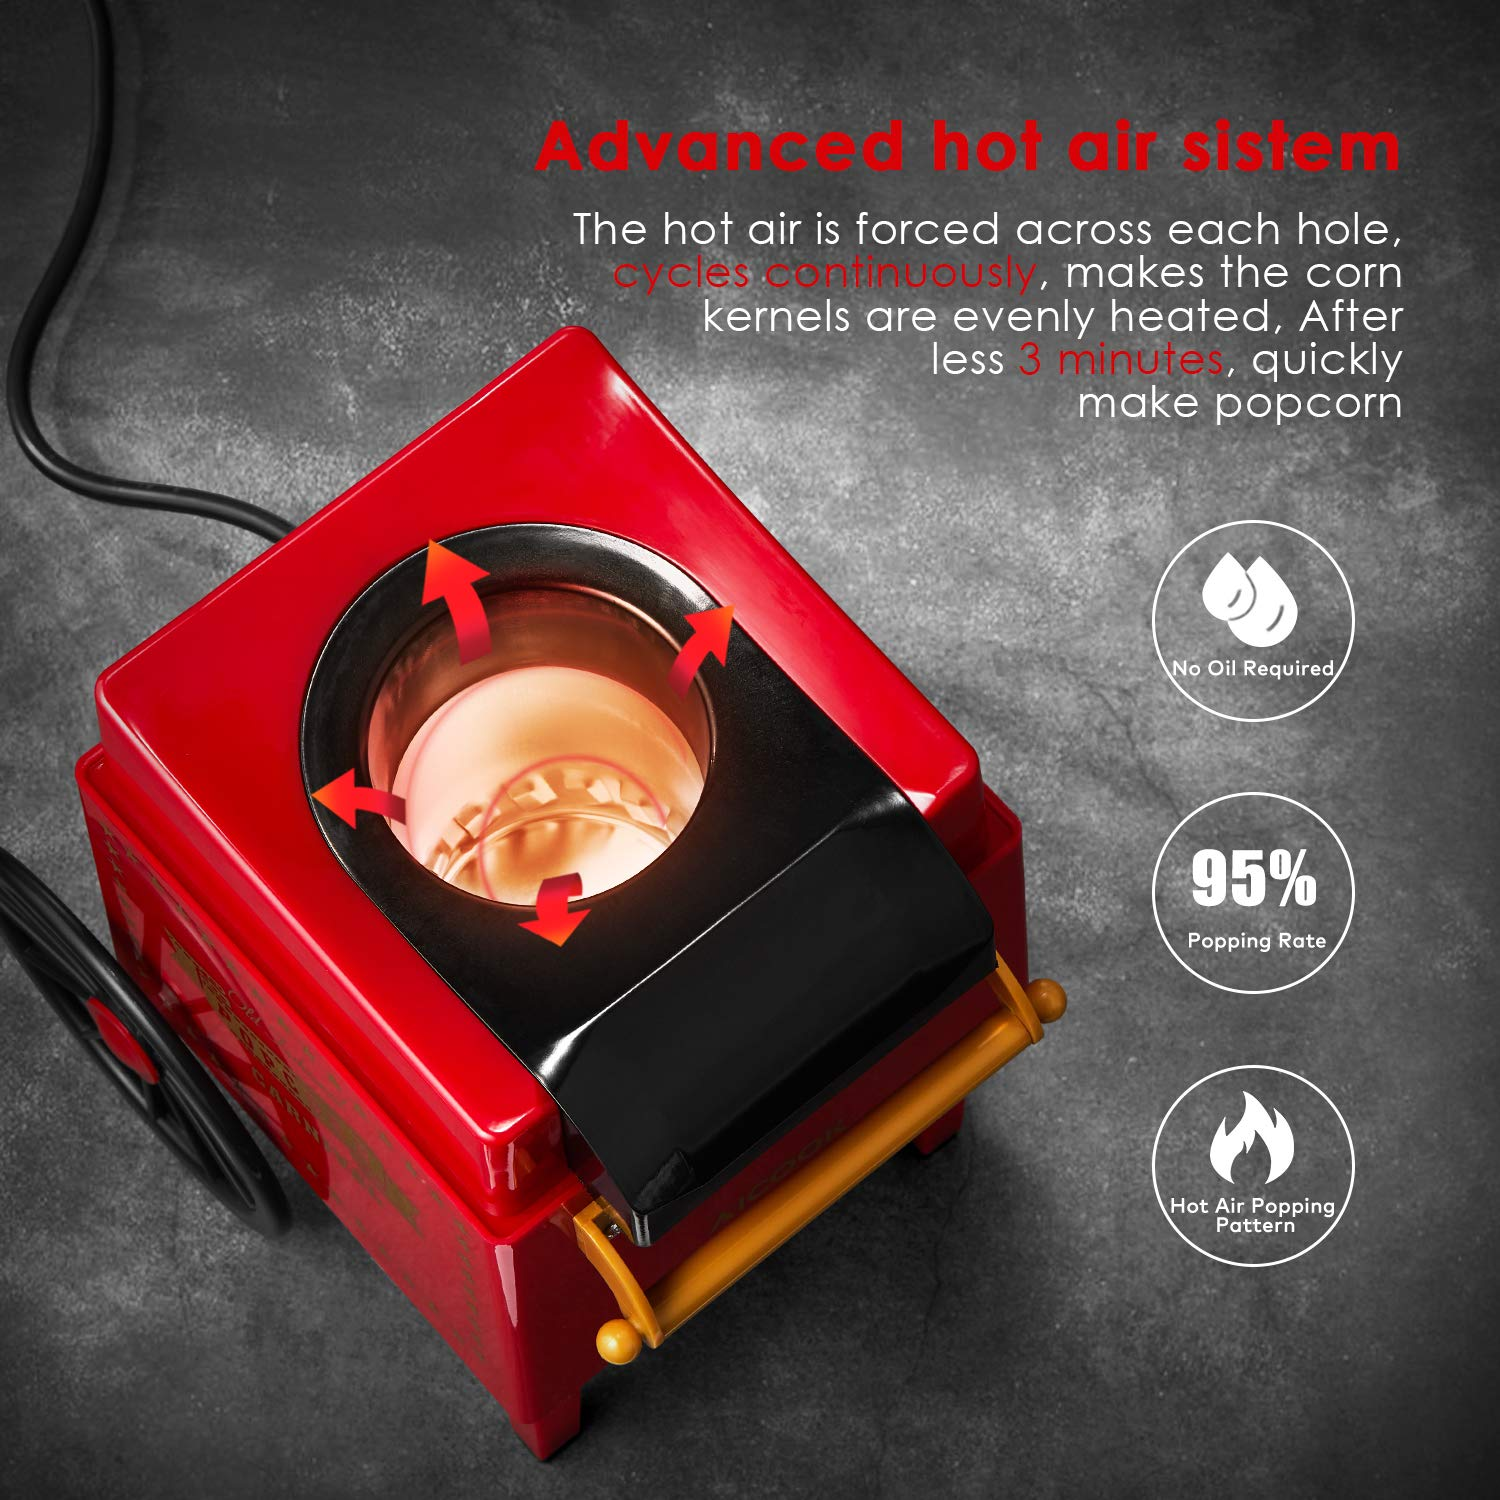 Aicook Hot Air Popcorn Popper Maker with Measuring Cup, No Oil Needed, FDA and ETL Approved, Red